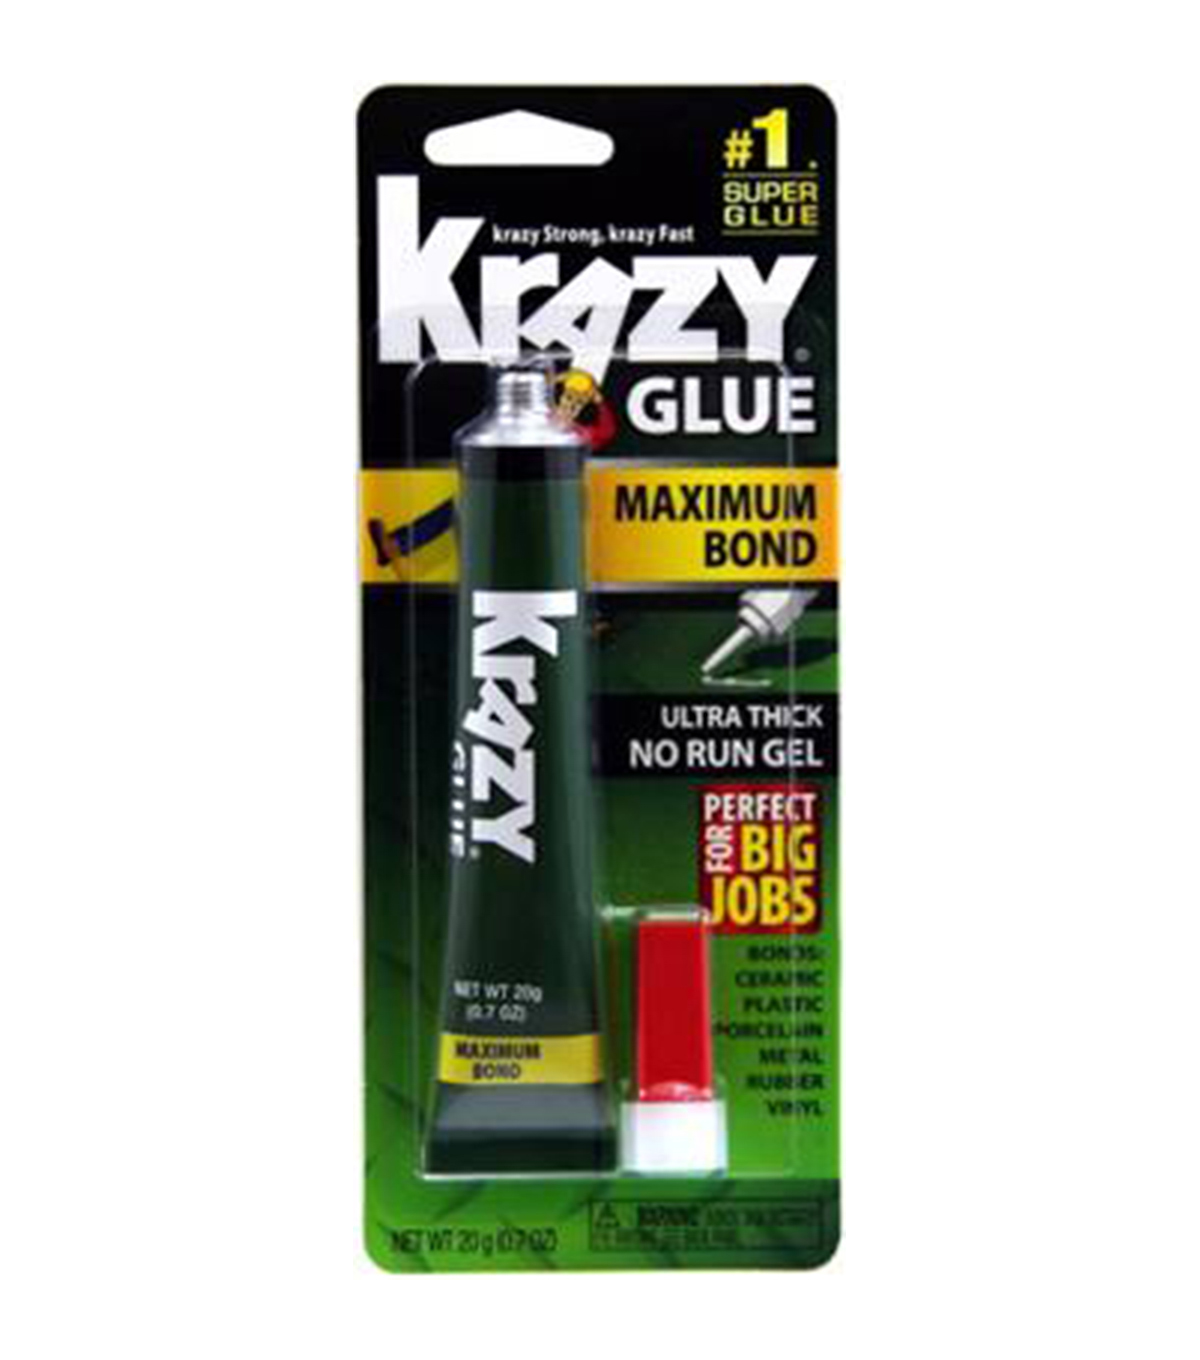 Krazy® Glue Maximum Bond No Run Gel